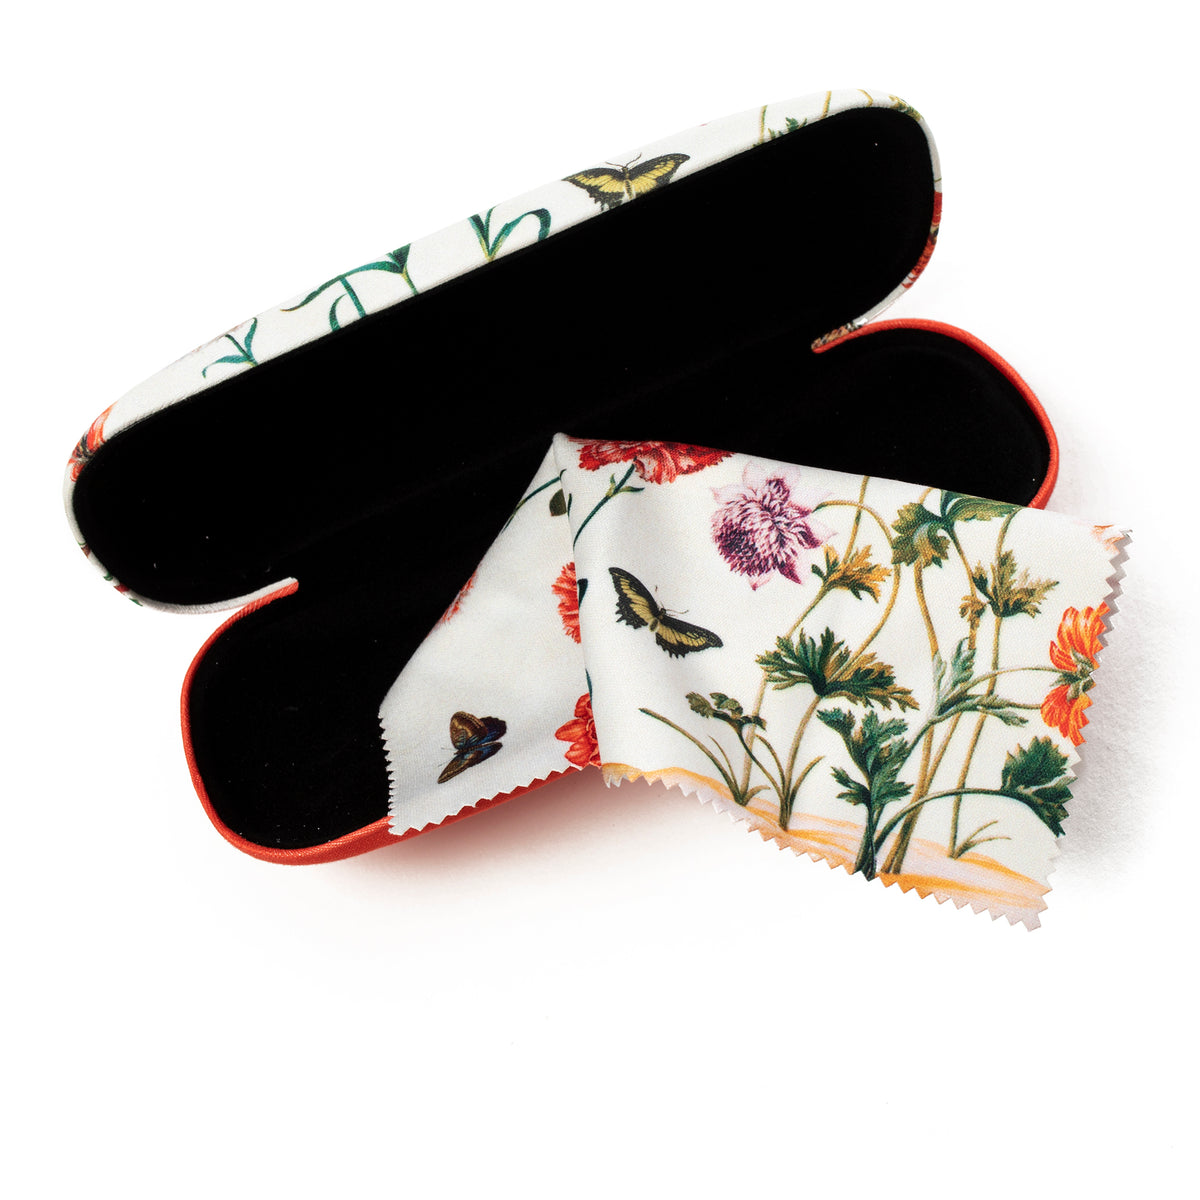 Eyeglass Case and Lens Cloth- Marie Sibylla Merian- Shown Open | Getty Store